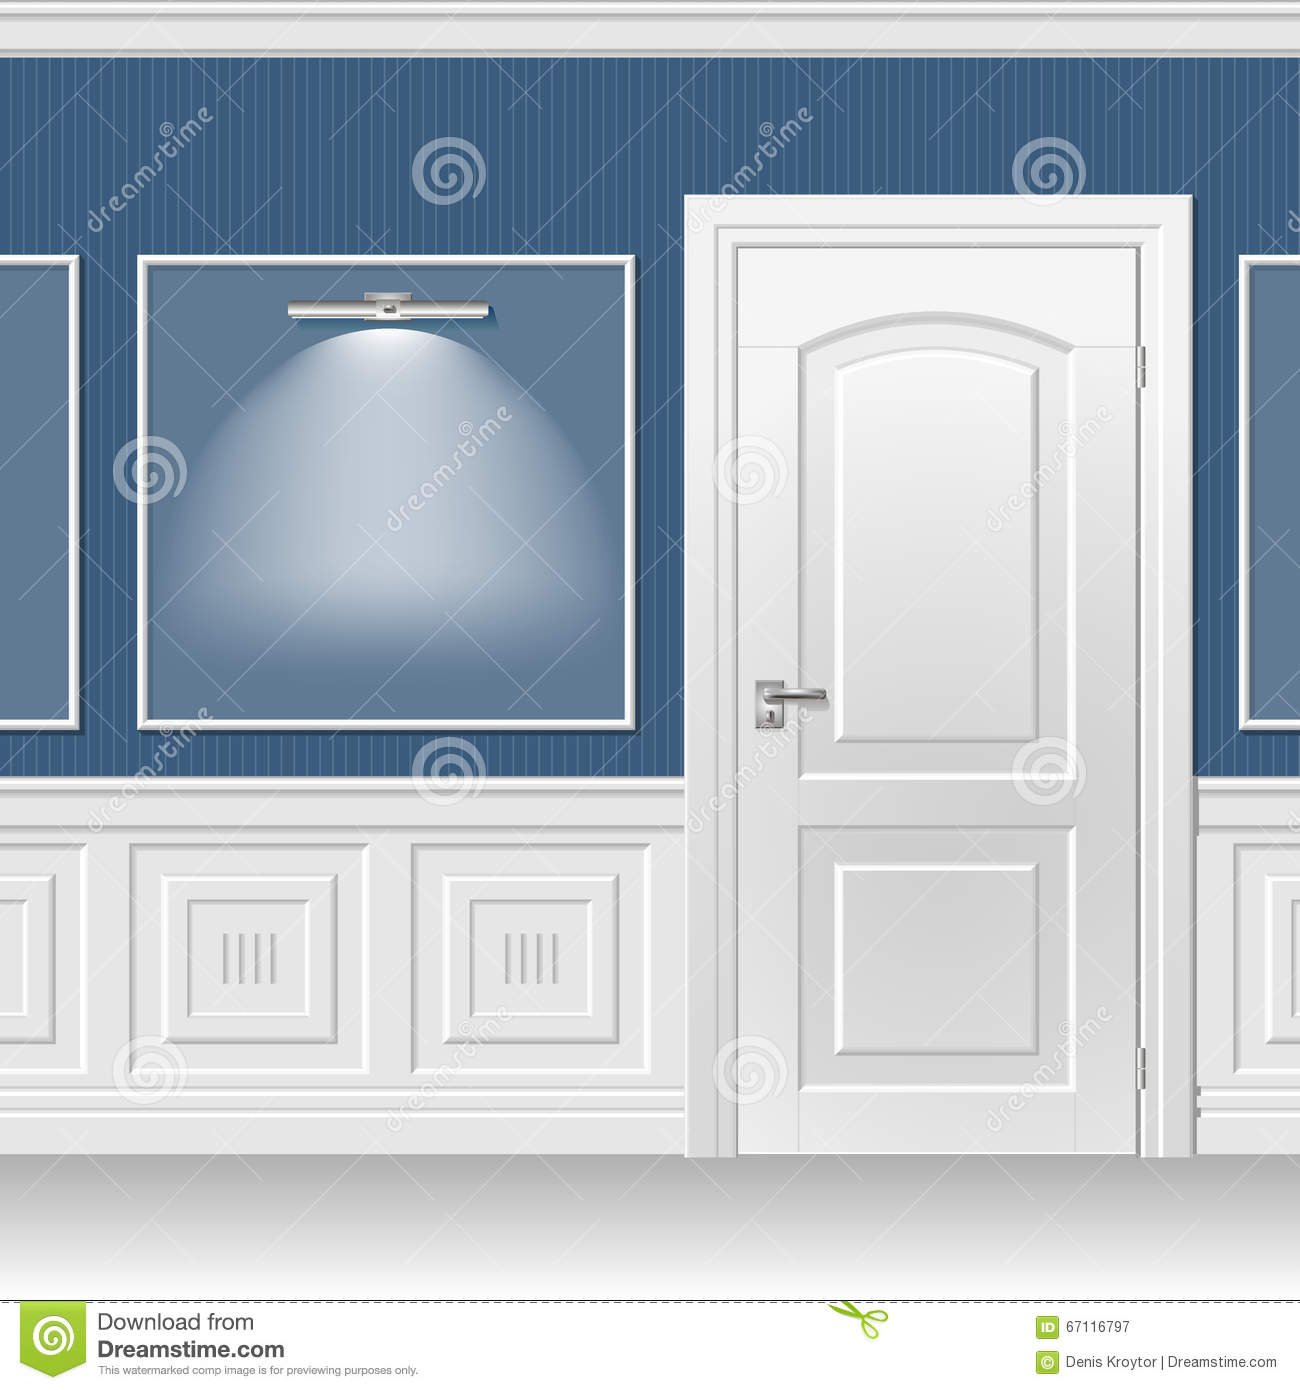 Door in the blue wall stock vector. Illustration of moldings - 67116797